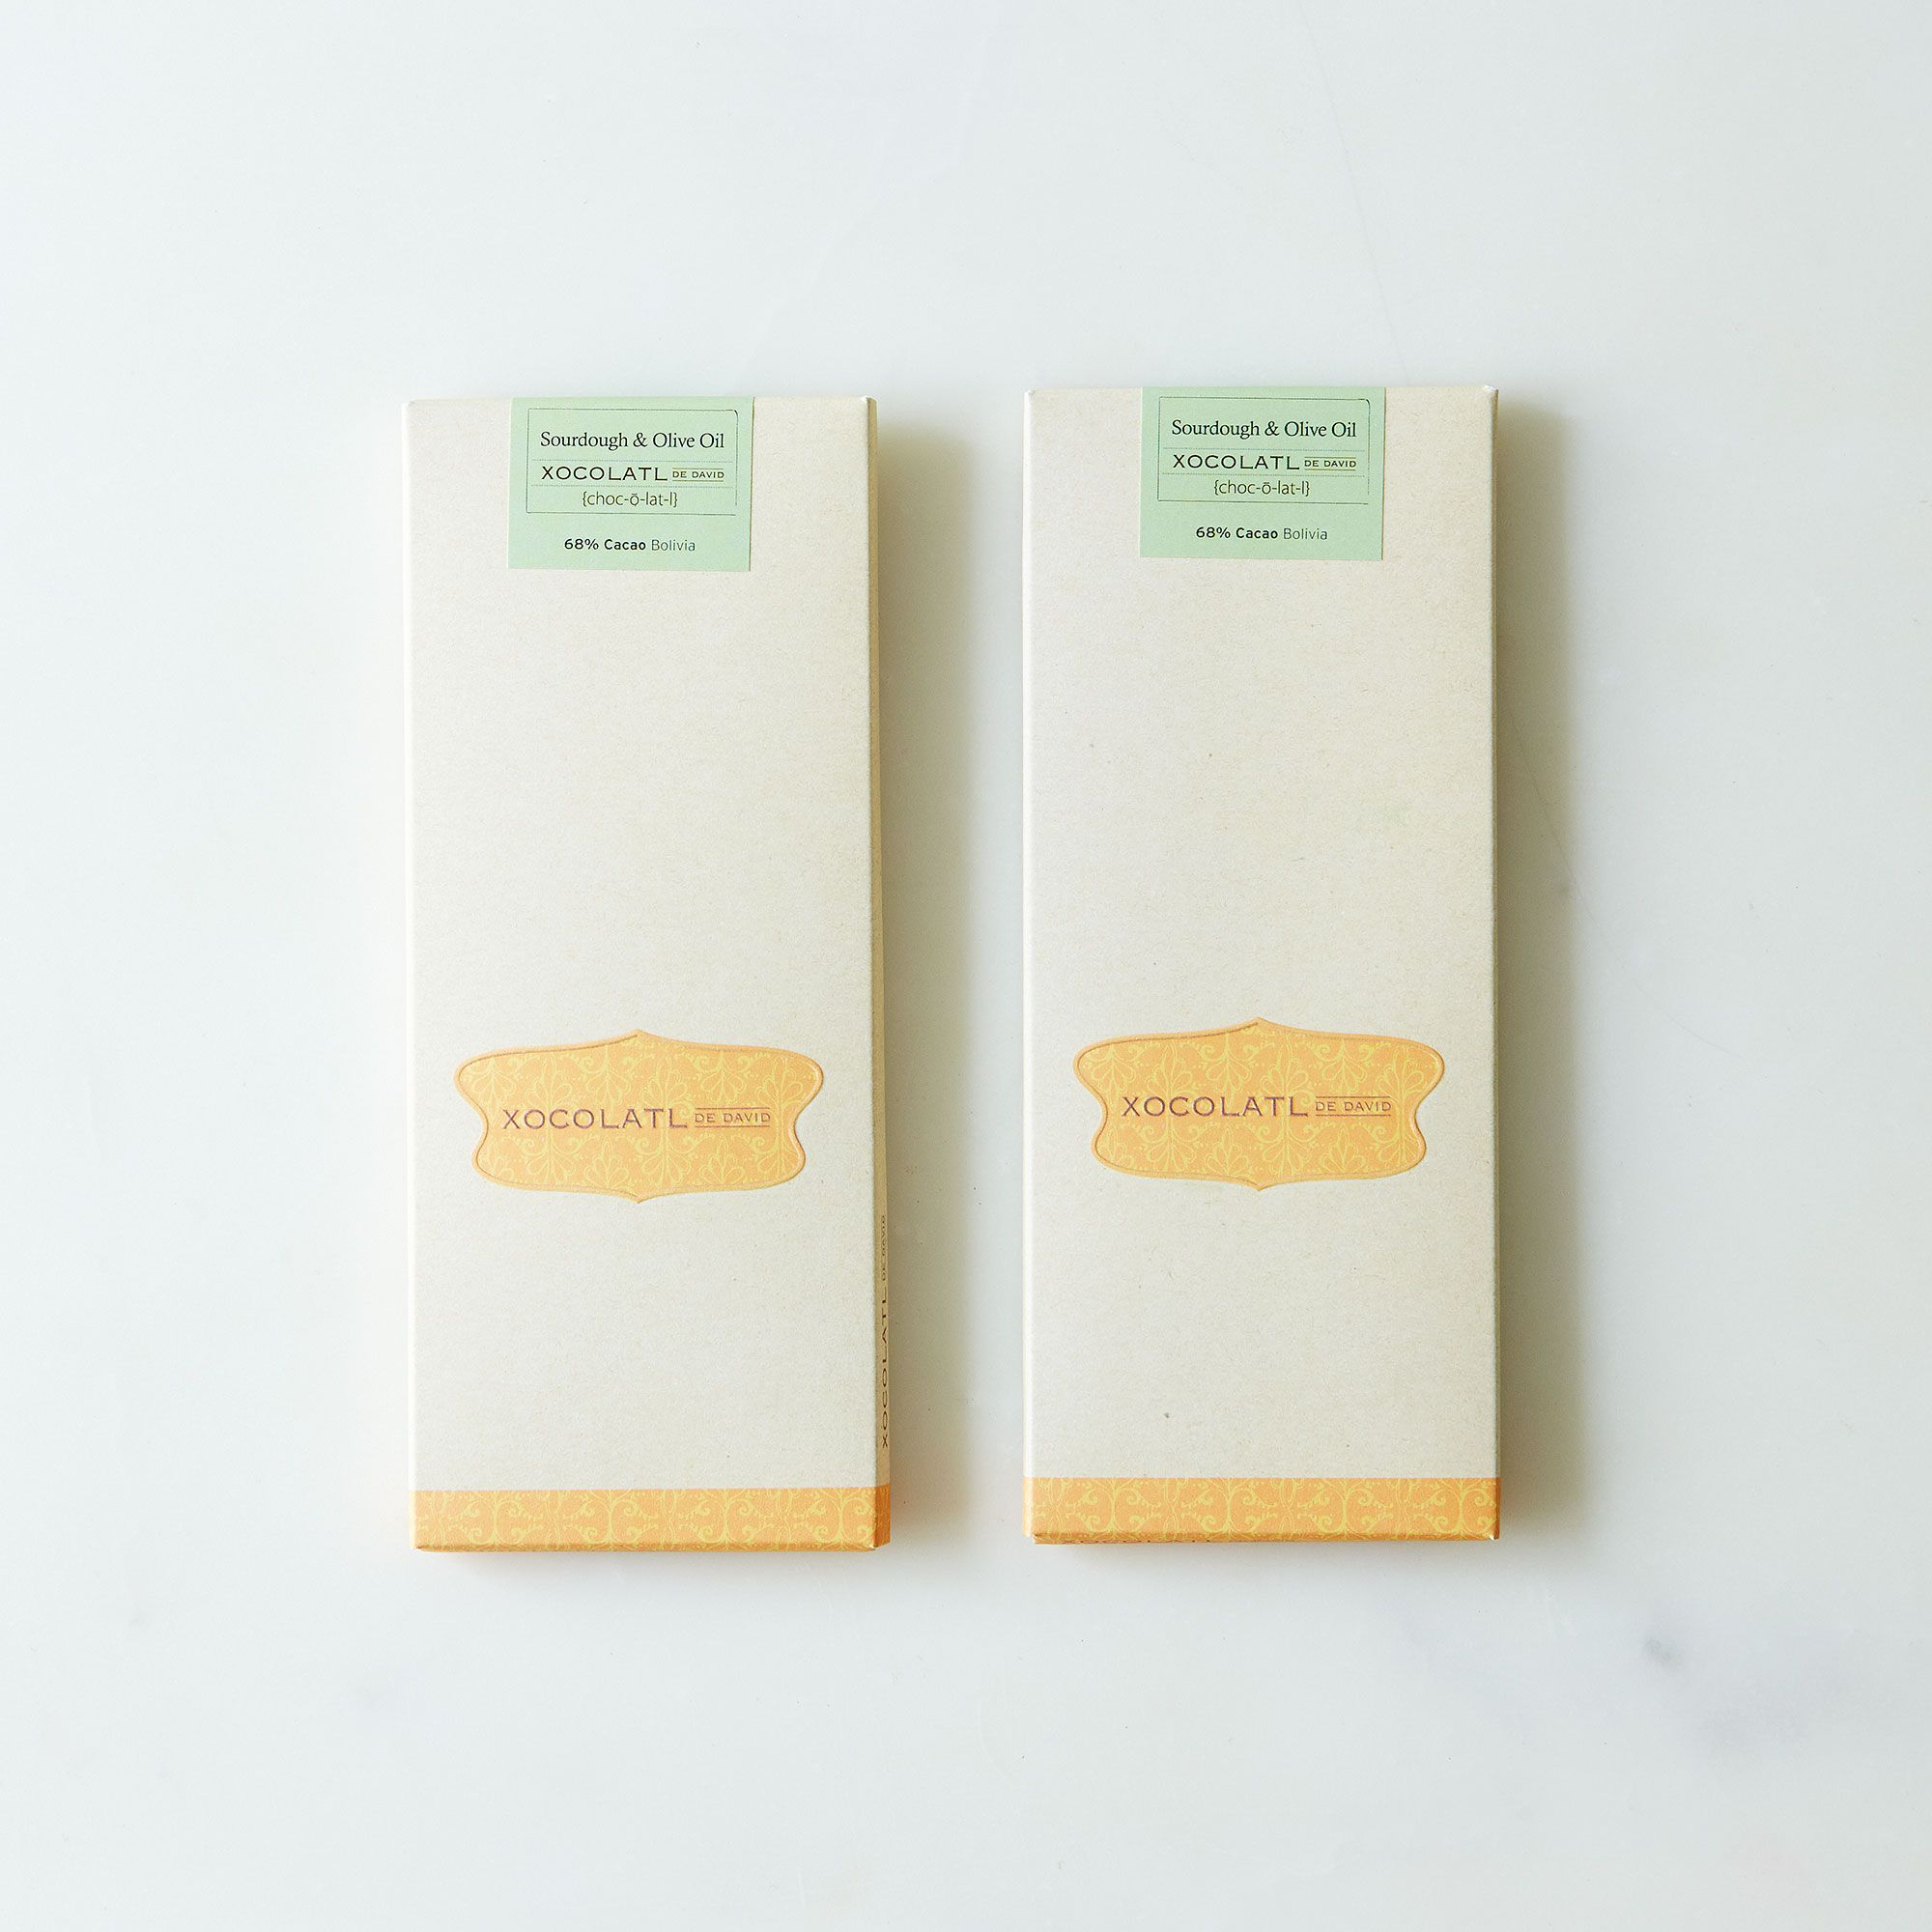 1dd1352a 990d 448a b8ff c52786a5f5e1  2014 1211 xocalati de david sourdough olive oil bar 2pack 155